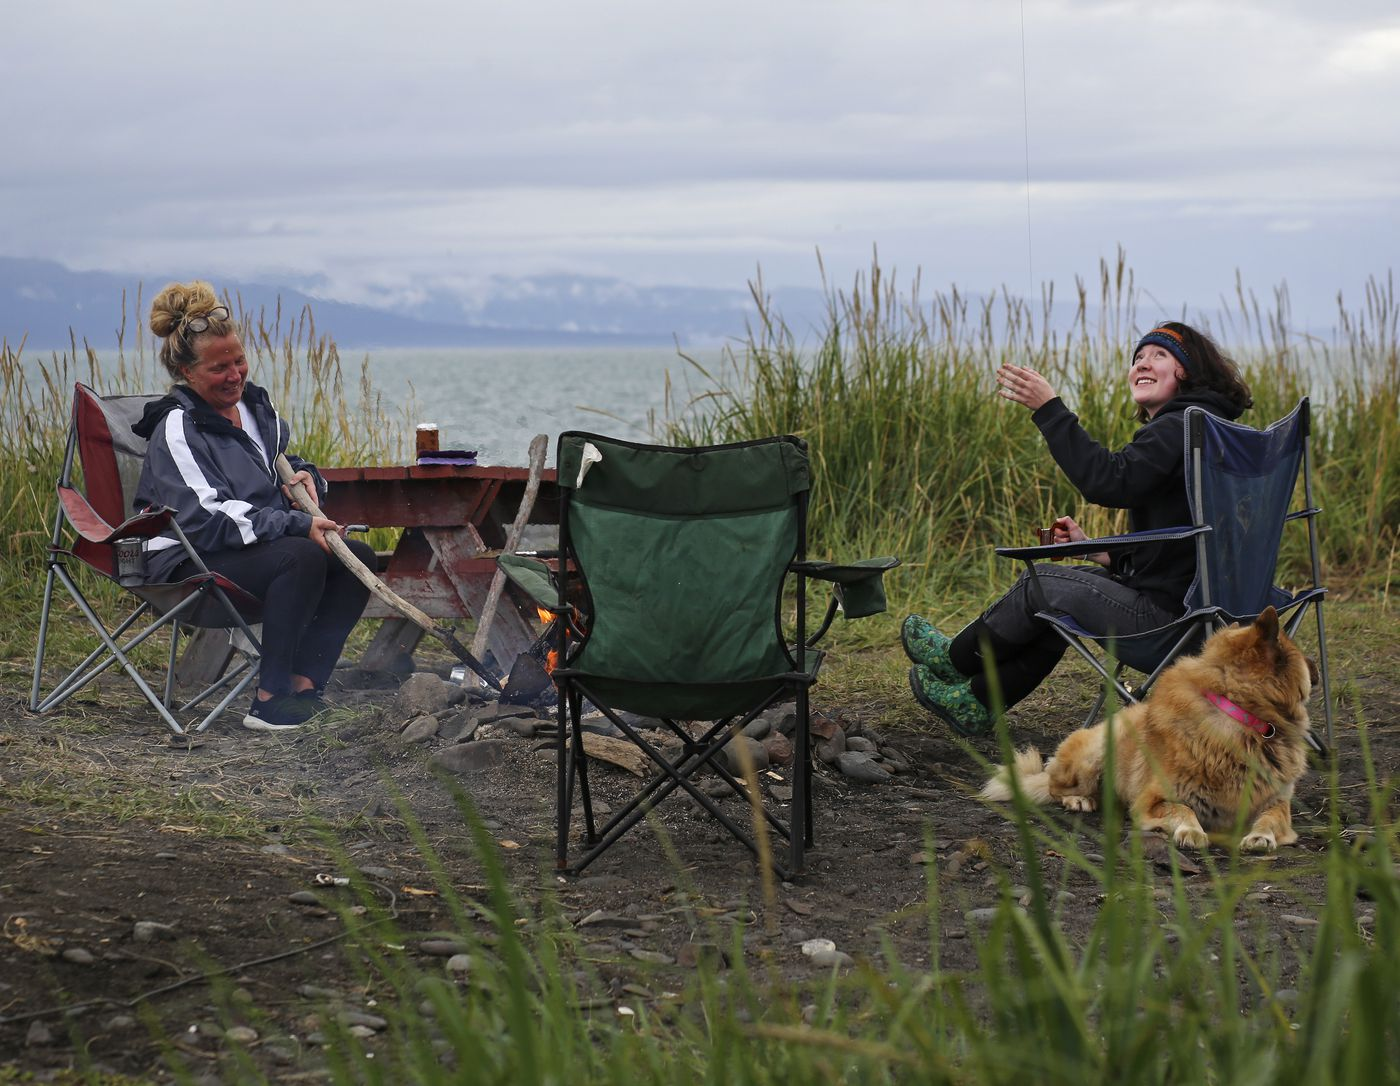 Abigail Schneiders, right, flies a kite as she sits with Donna Schneiders, left, and their dog, Elka, on a beach along the Homer Spit on Aug. 8, 2020. (Emily Mesner / ADN)